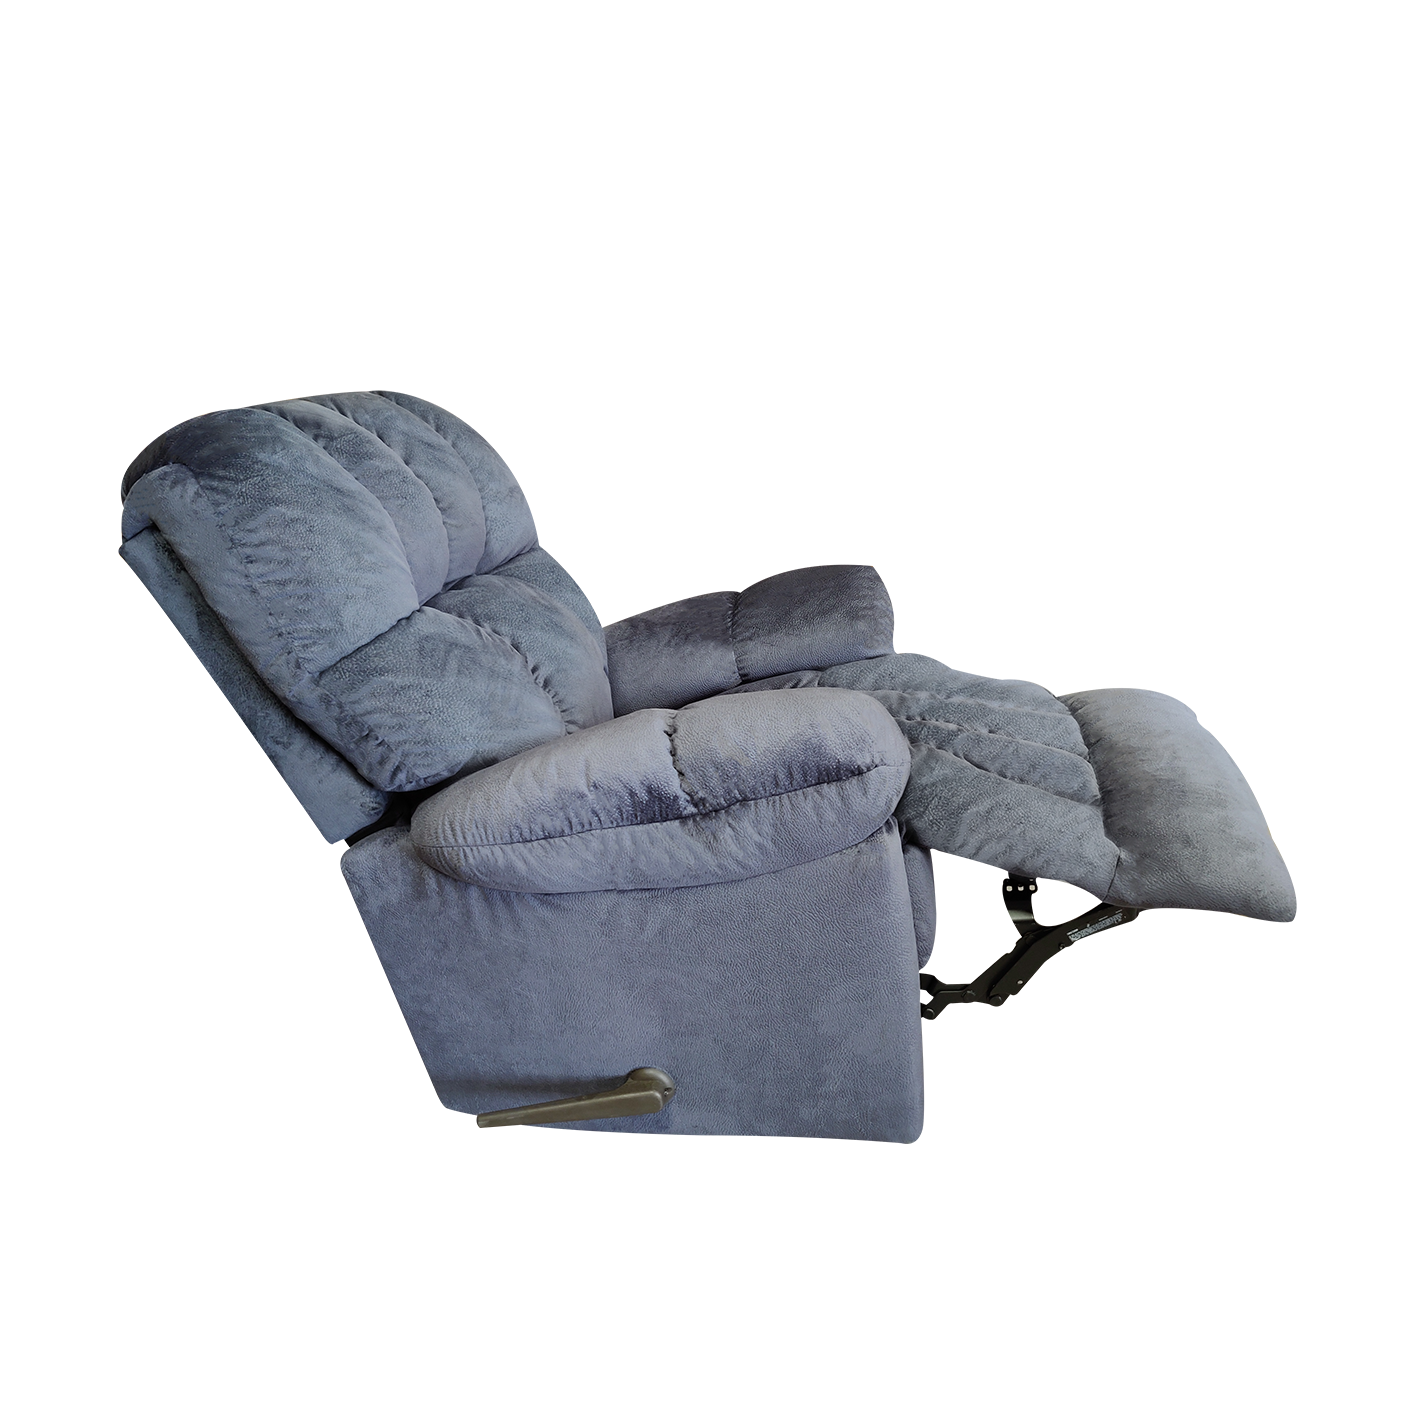 Rocker recliner chair Double fill كرسي راحة هزاز حشوة دبل